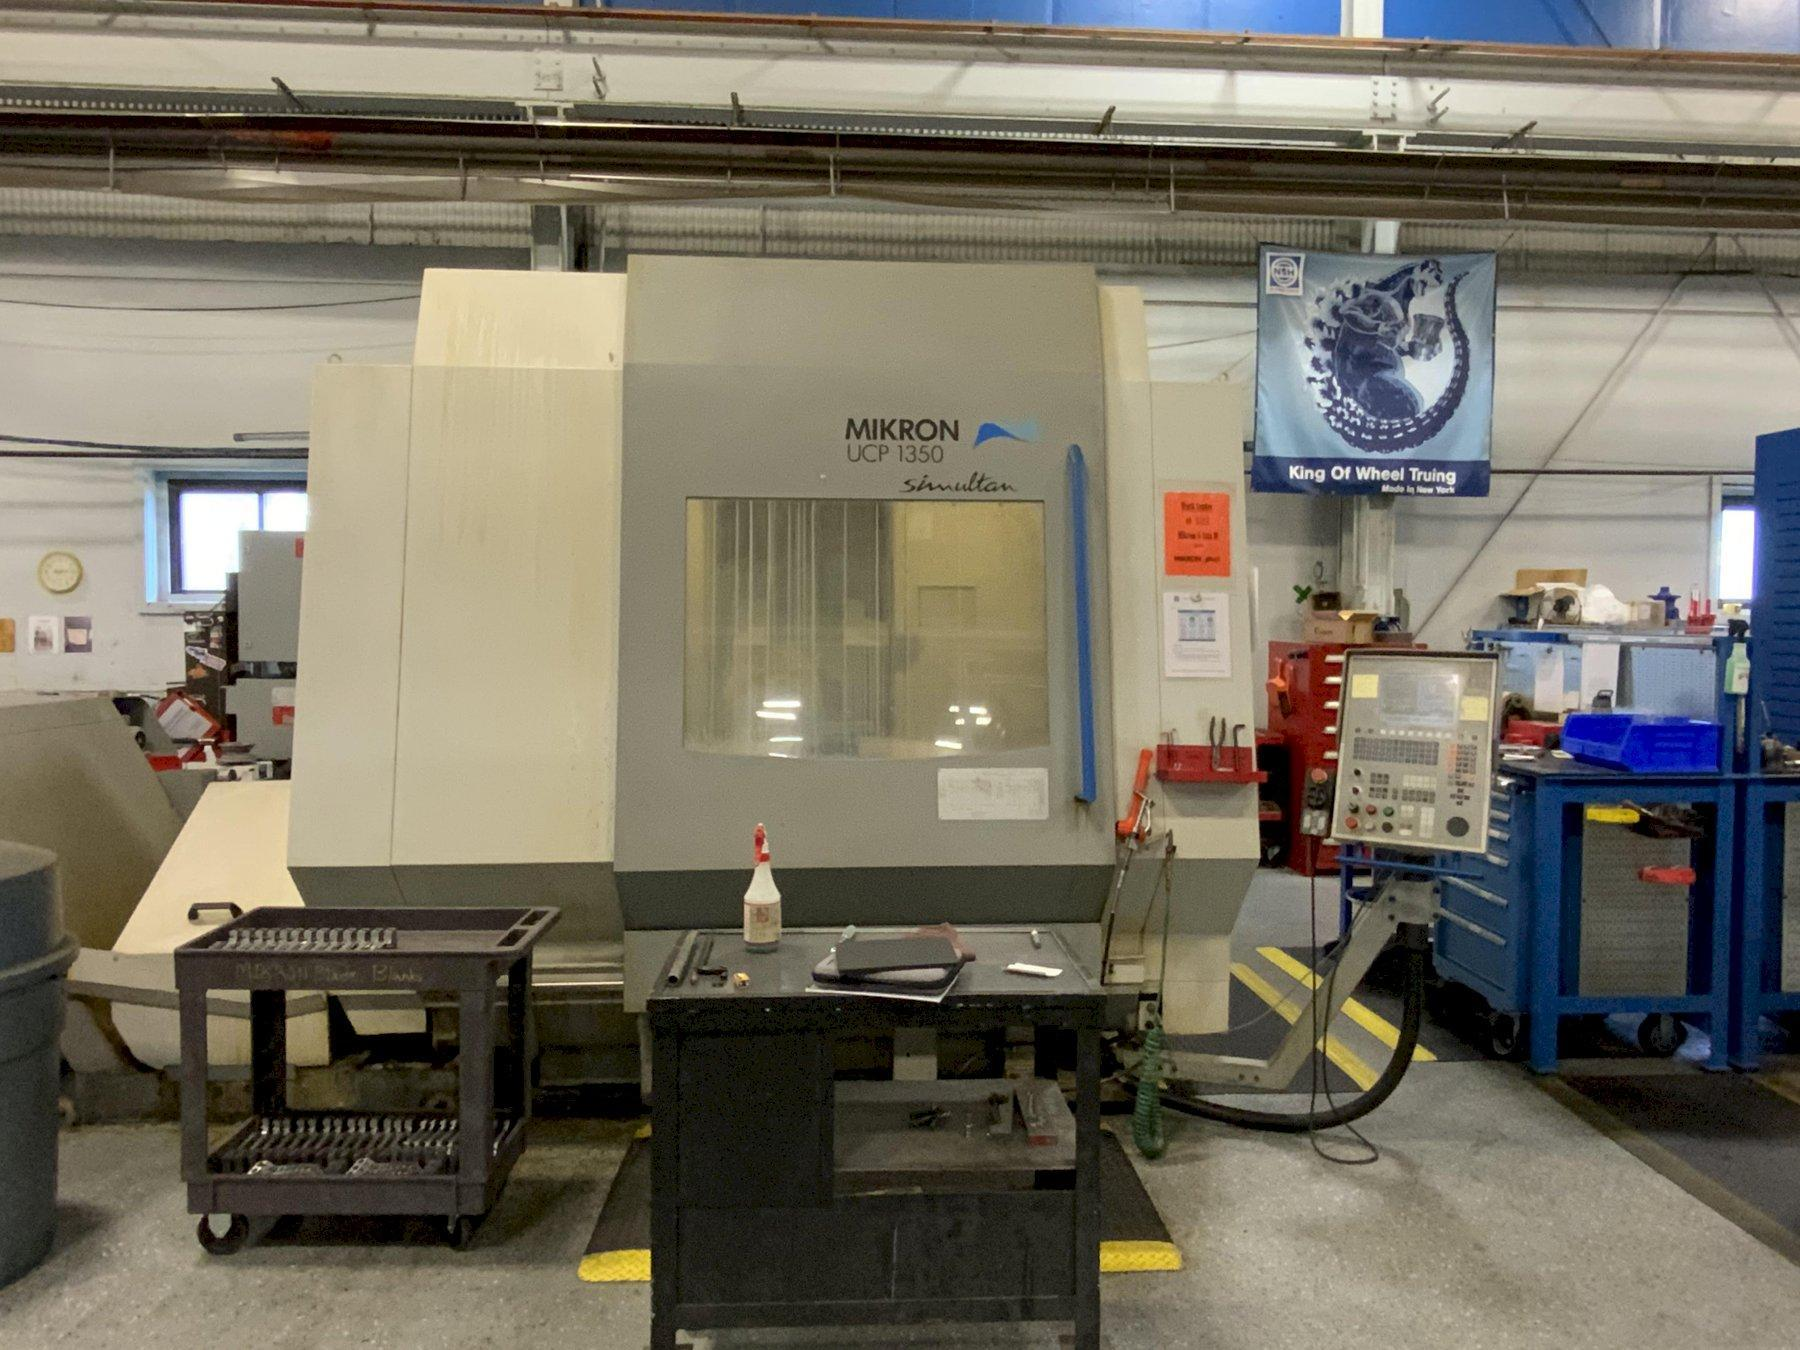 Mikron Model UCP-1350 5-Axis High Speed Universal Machining Center, Mfg. 2002